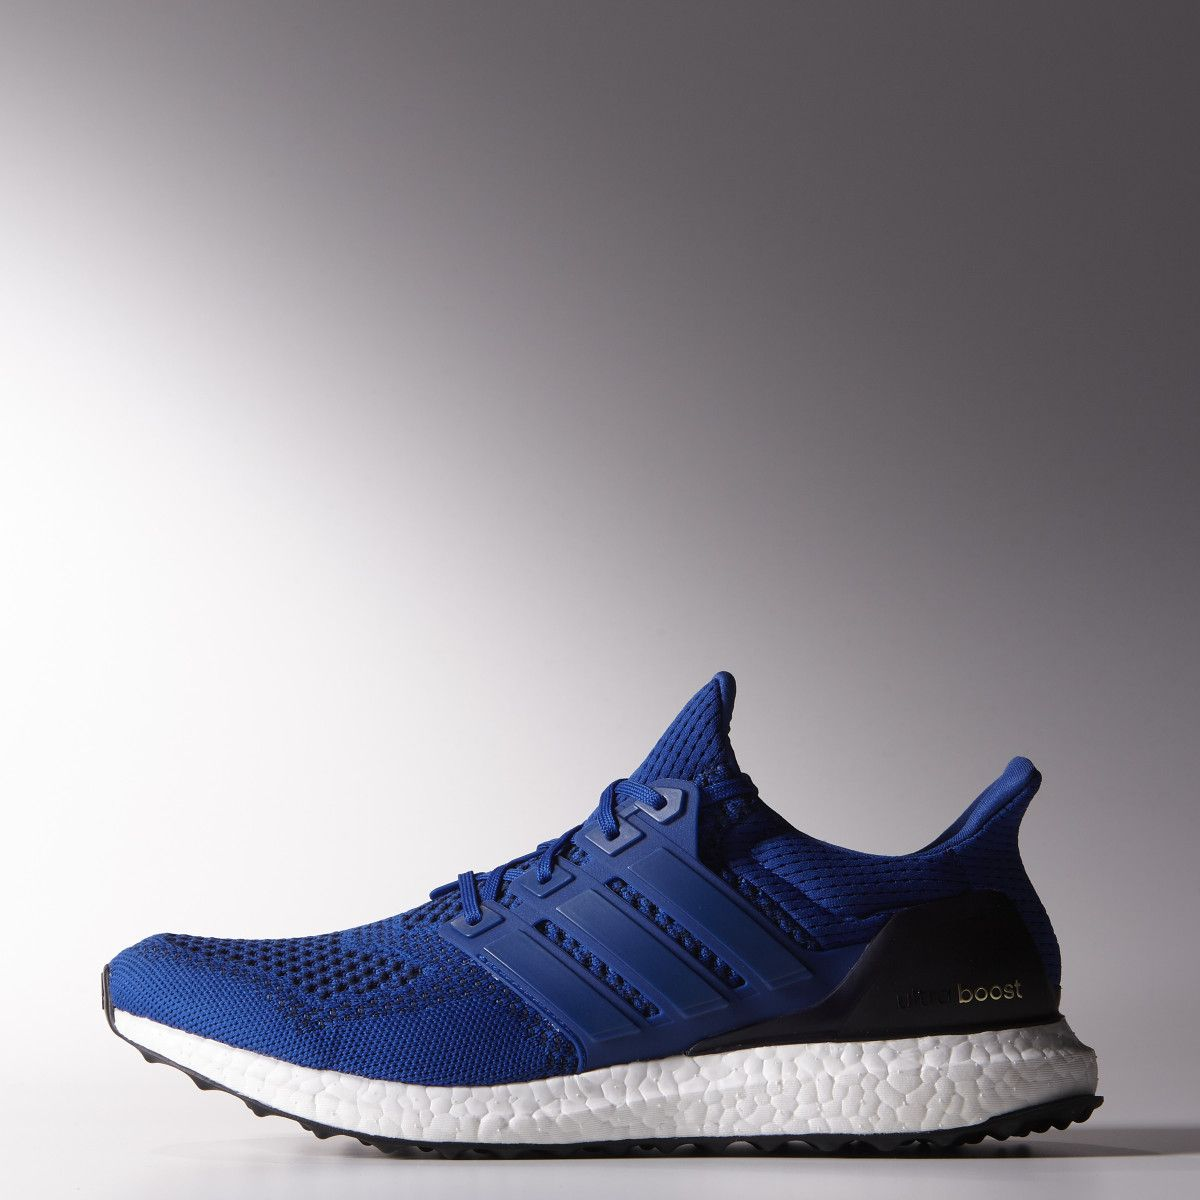 David Beckham's Favorite, The Adidas Ultra Boost | Royal Fashionist